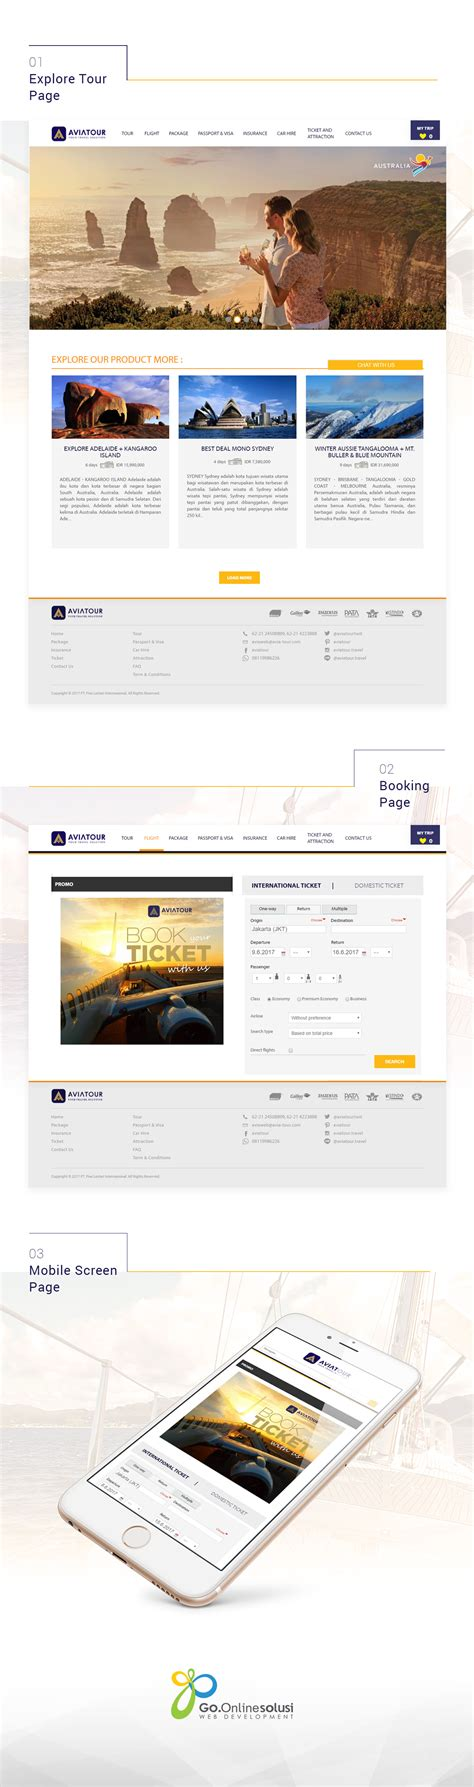 web design agency jakarta avia tour portfolio gositus web design and digital